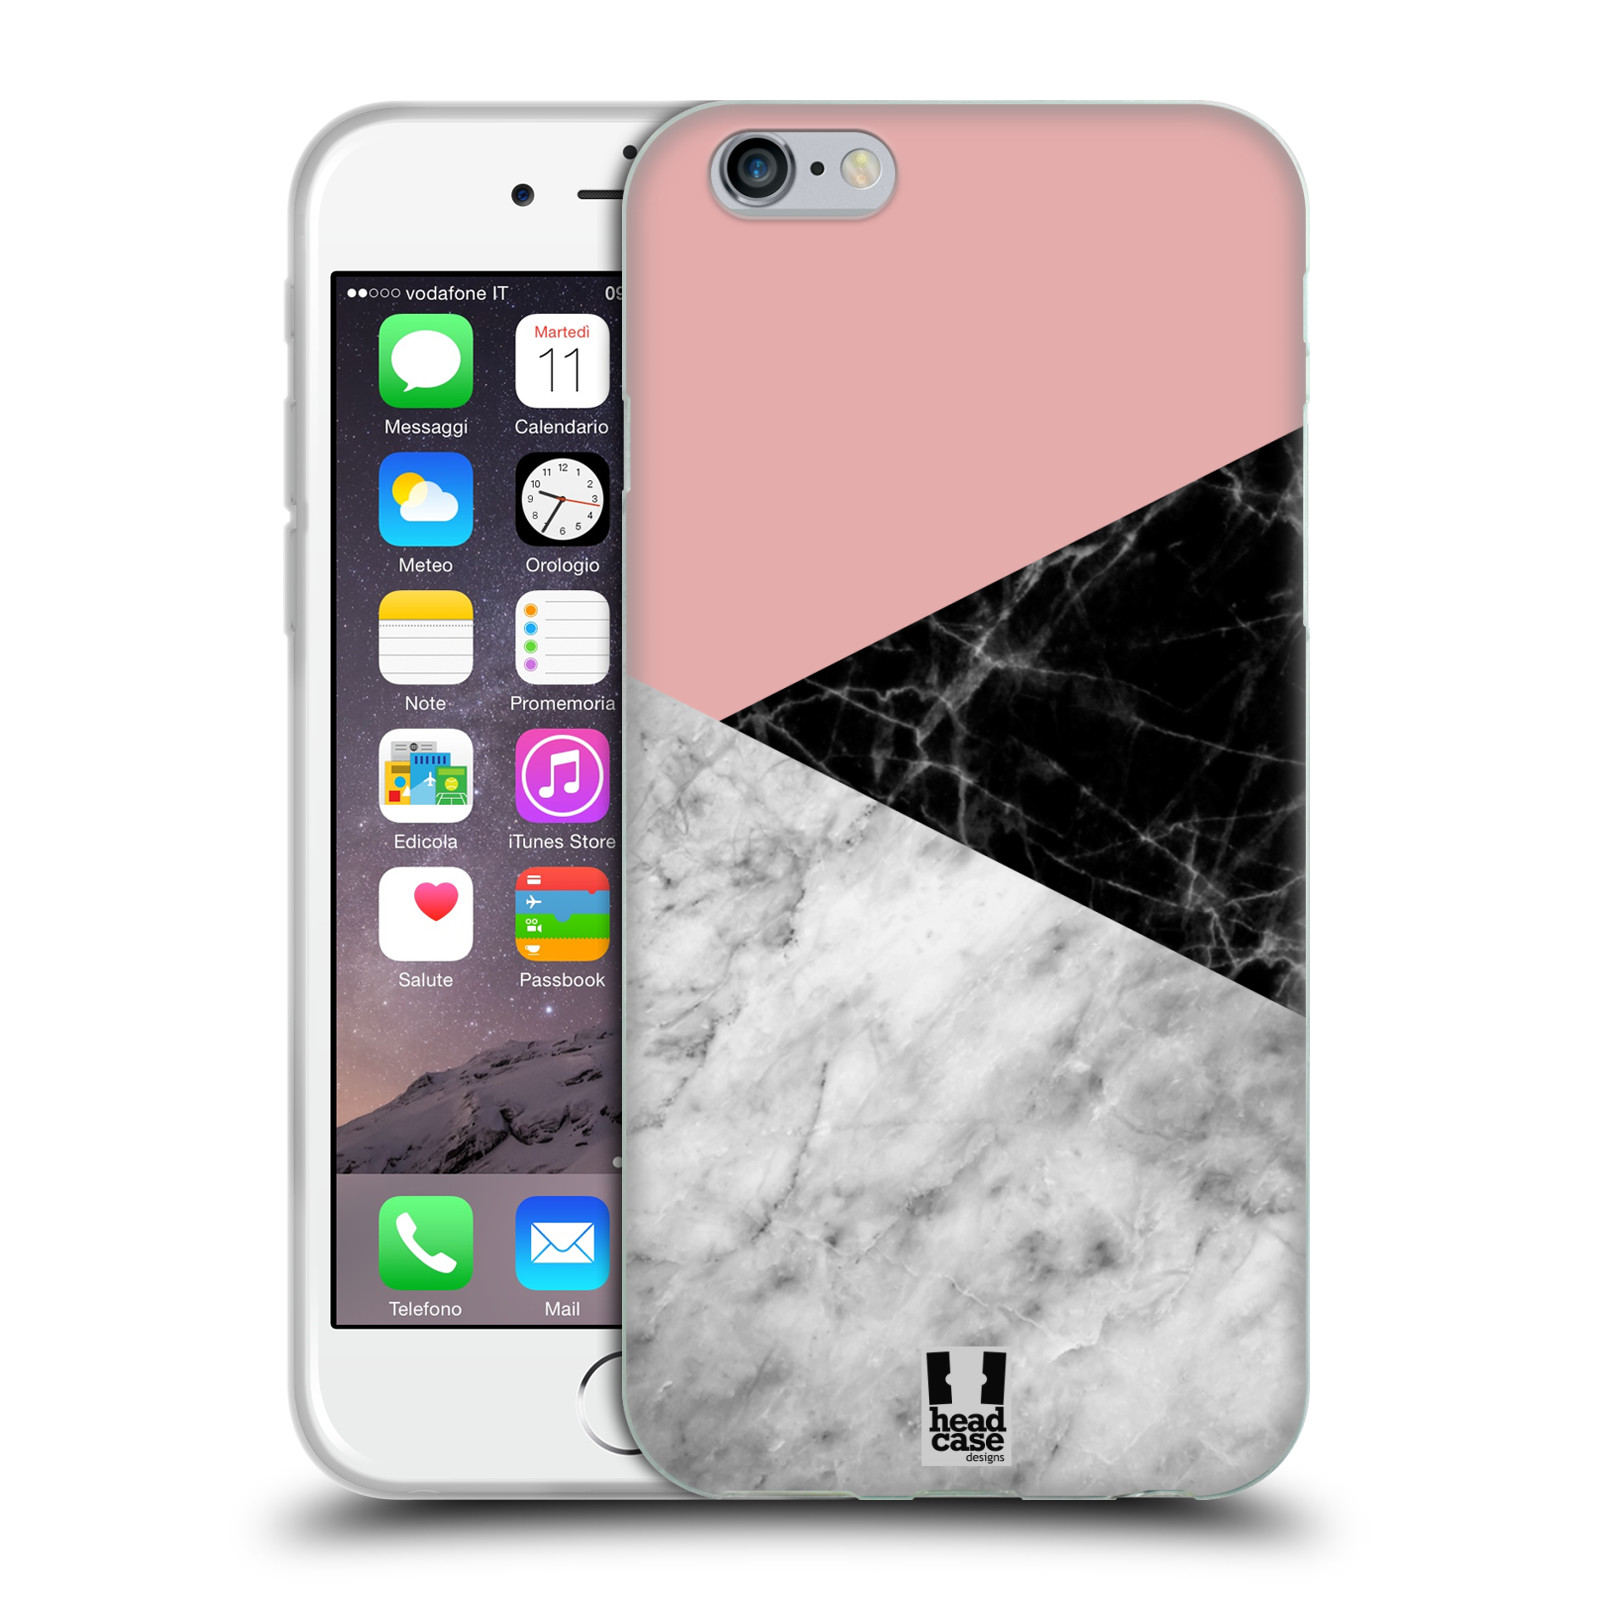 Silikonové pouzdro na mobil Apple iPhone 6 - Head Case - Mramor mix